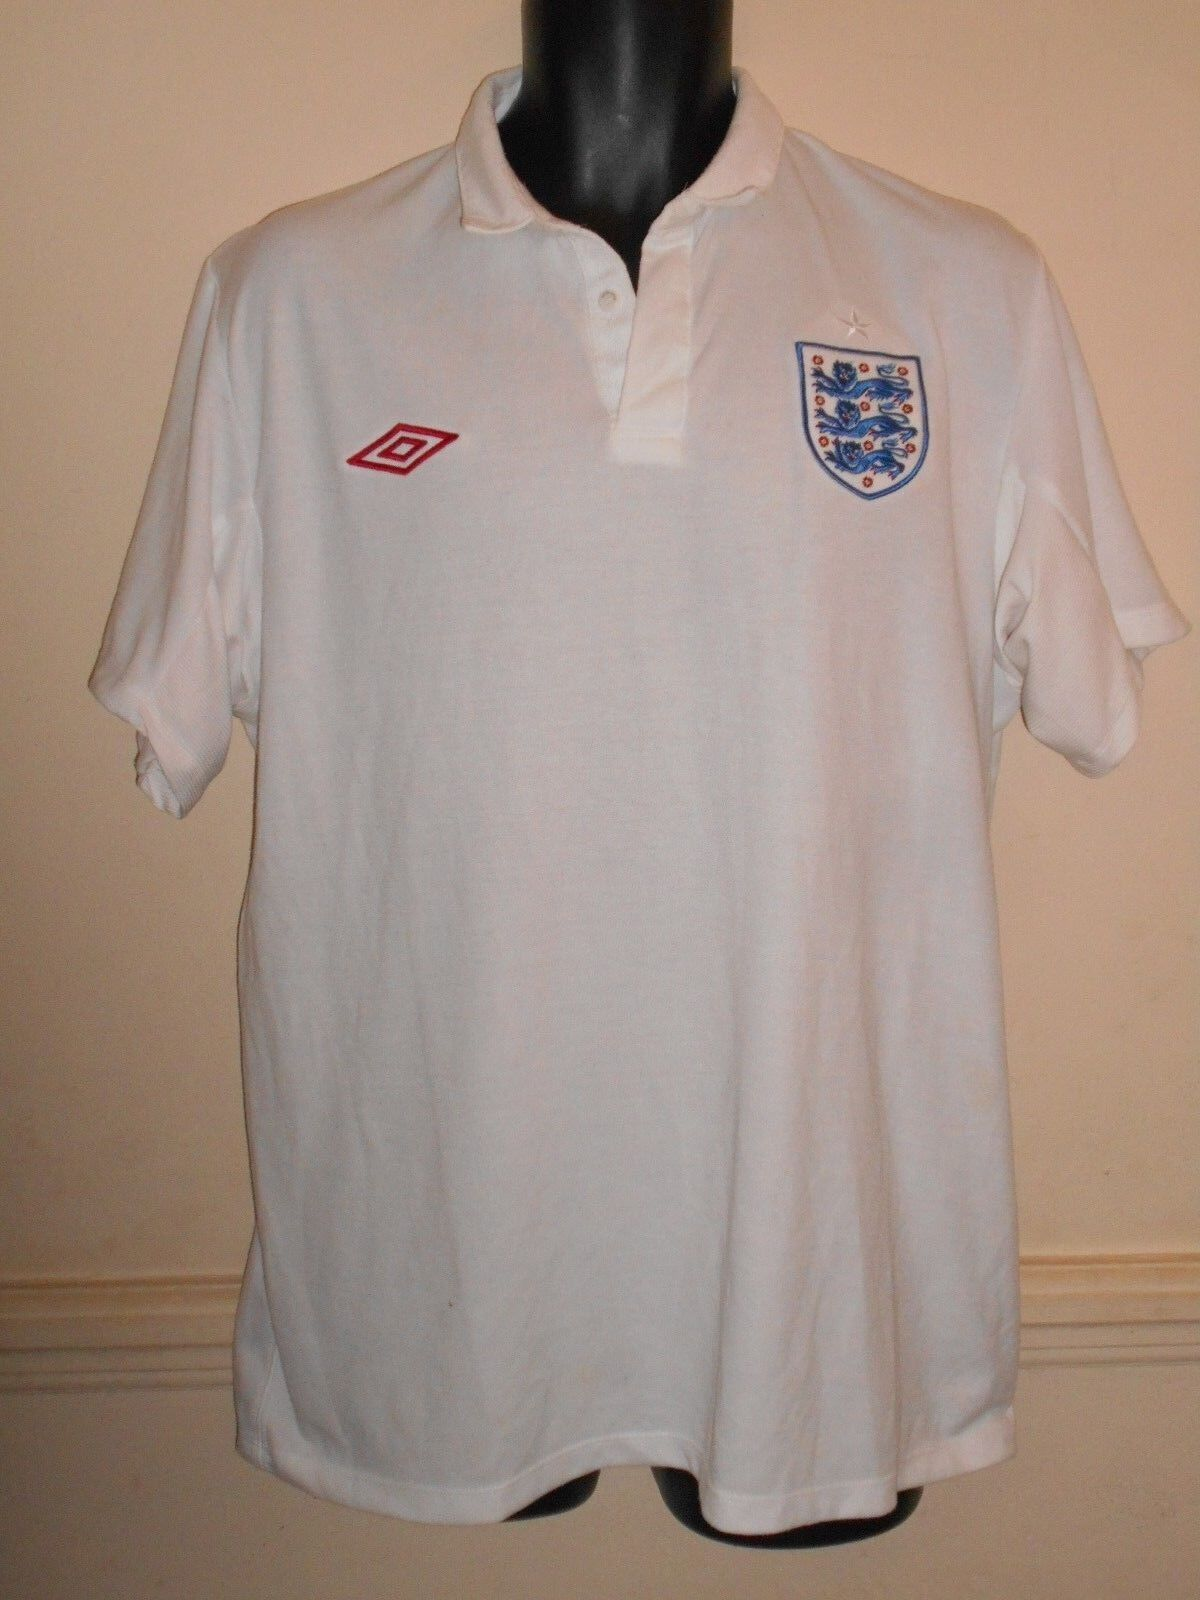 England Home Shirt World Cup 2010  xl men's Size 48 New Without Tags